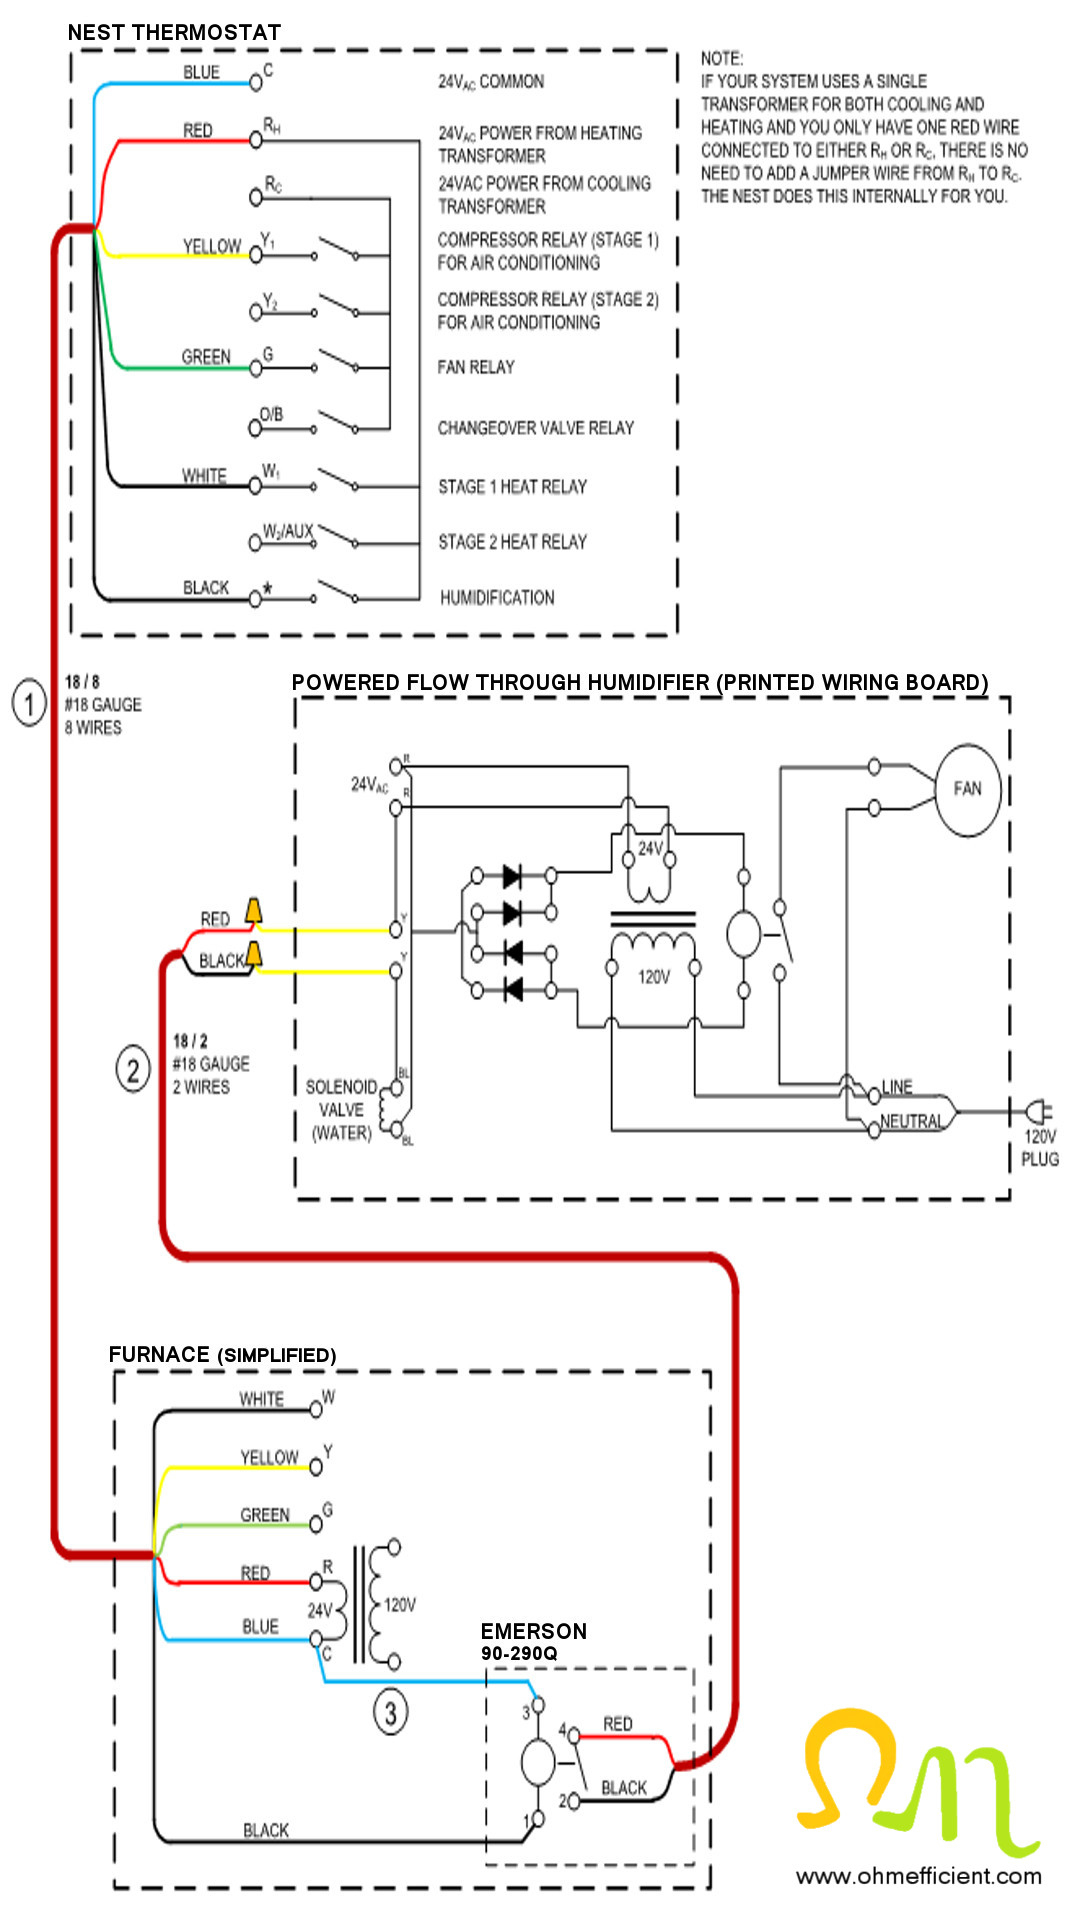 How To Connect & Setup A Nest Thermostat To Function As A Humidistat - Nest Temperature Sensor Wiring Diagram